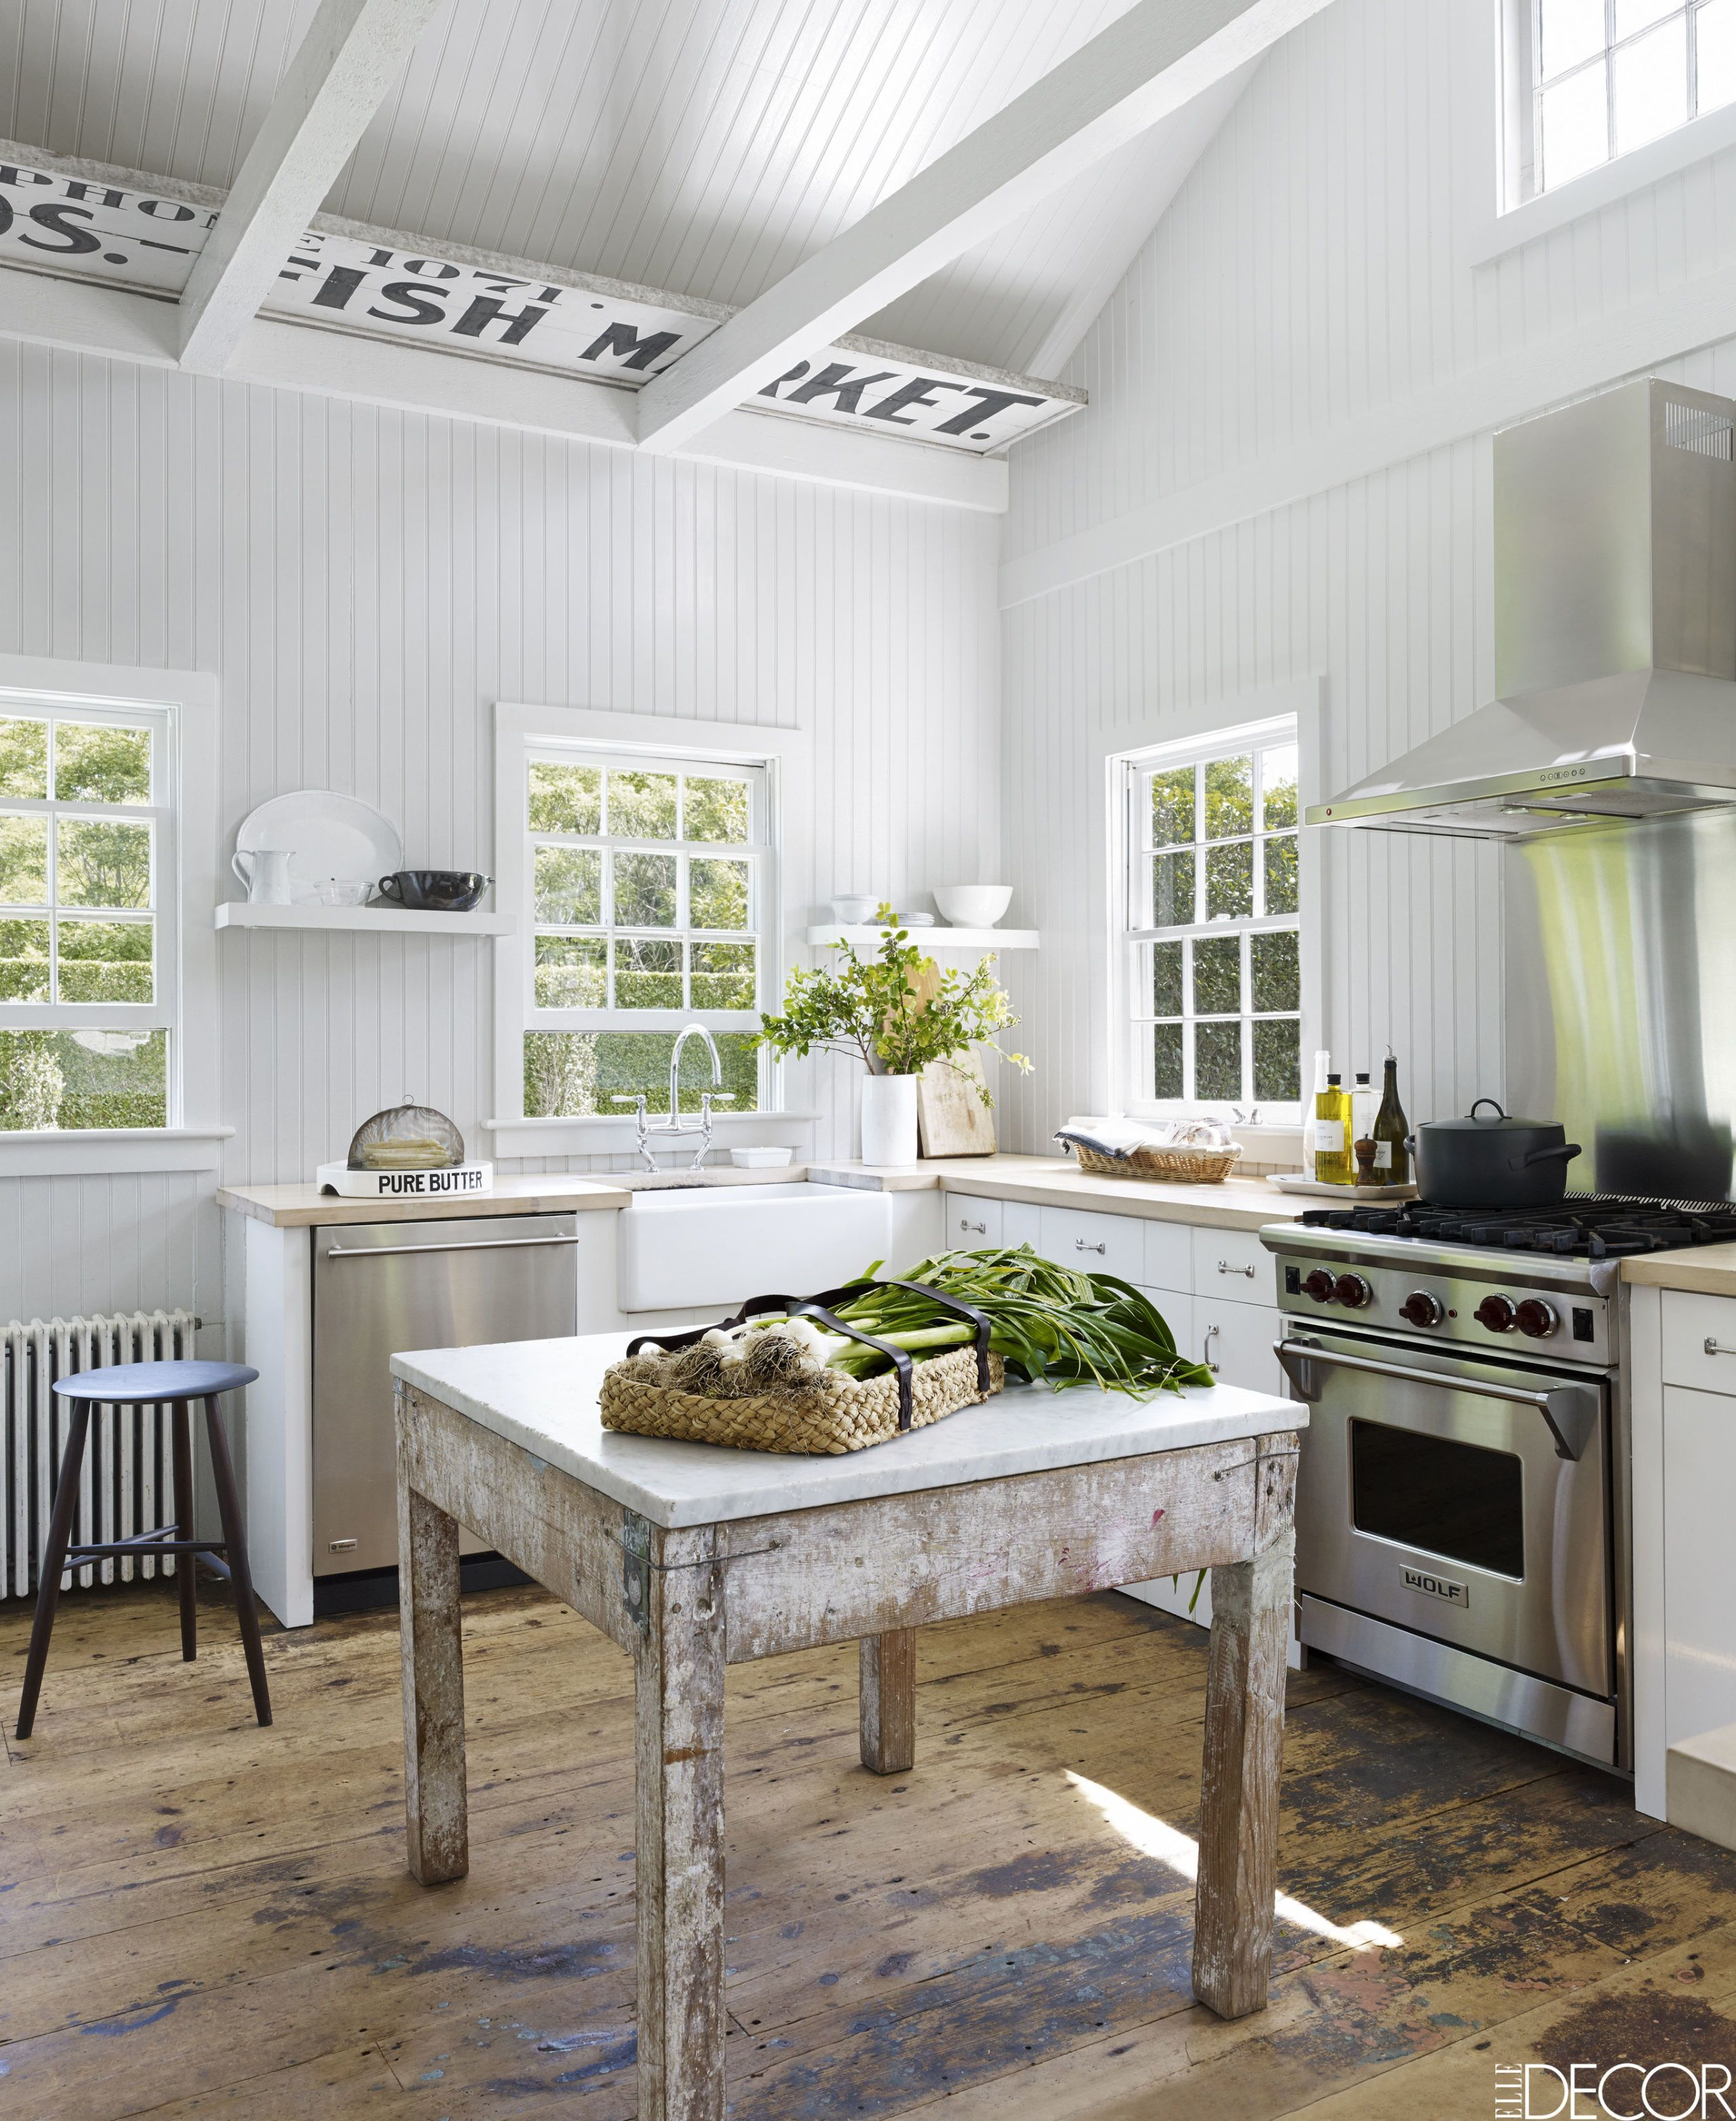 Charmant Rustic Country Kitchens